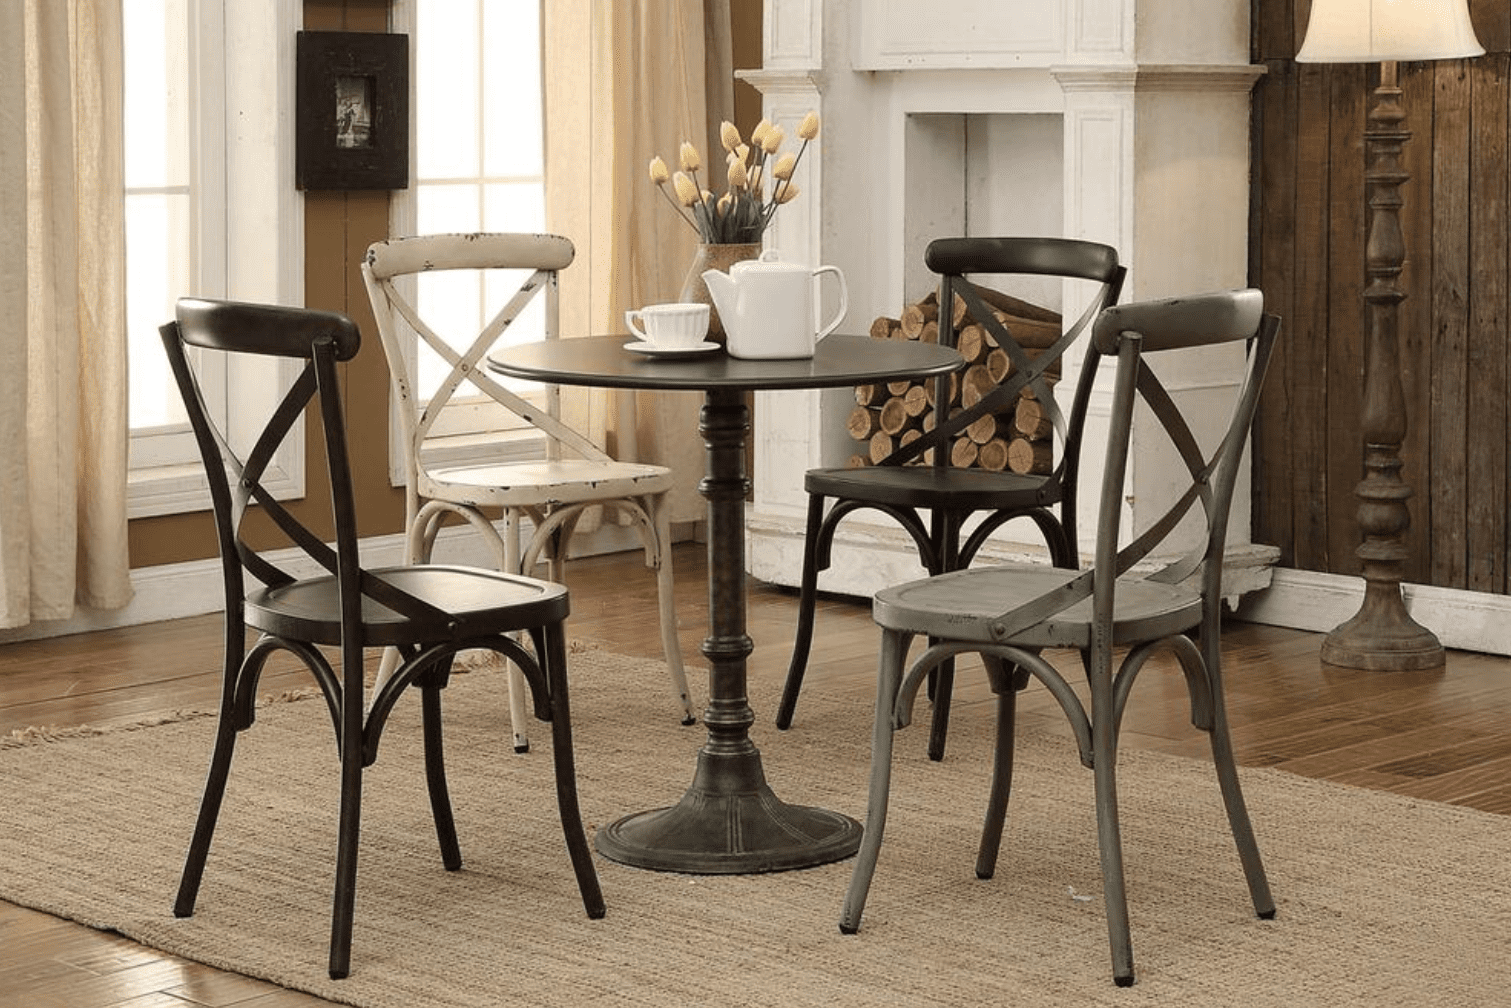 Miraculous Inexpensive Dining Room Furniture Kitchn Short Links Chair Design For Home Short Linksinfo